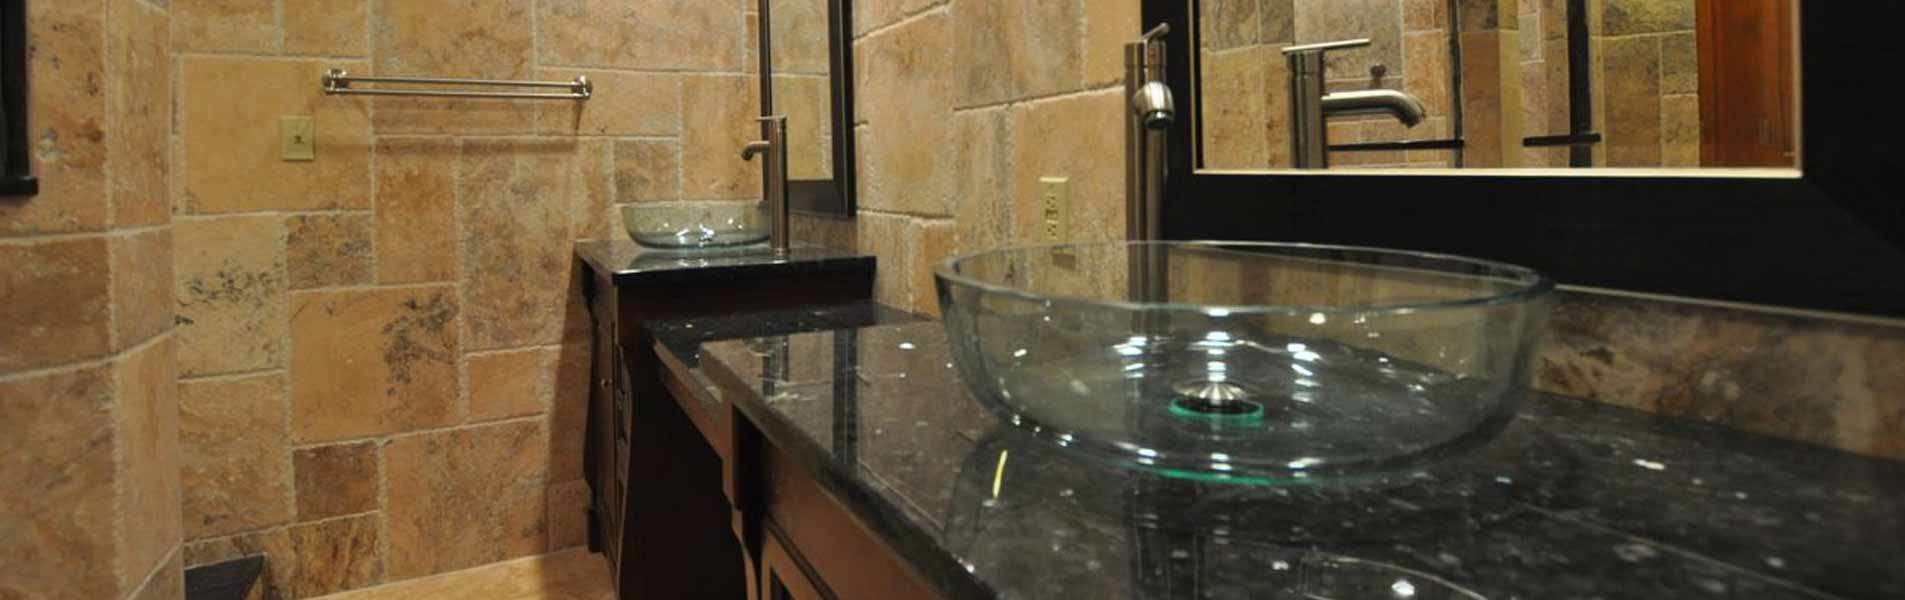 marble countertops Oakland, CA